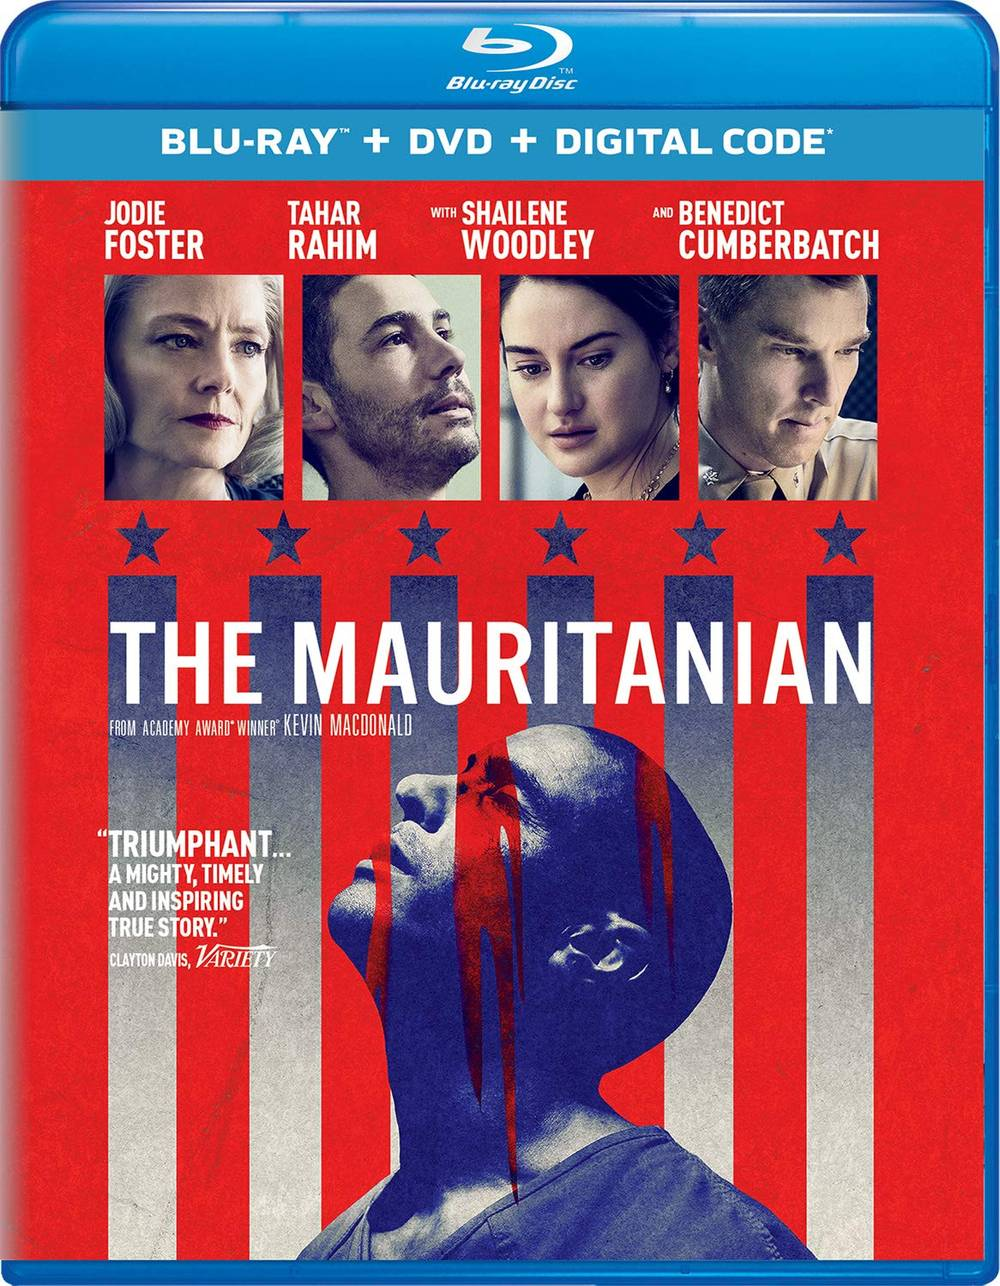 The Mauritanian [Movie] - The Mauritanian